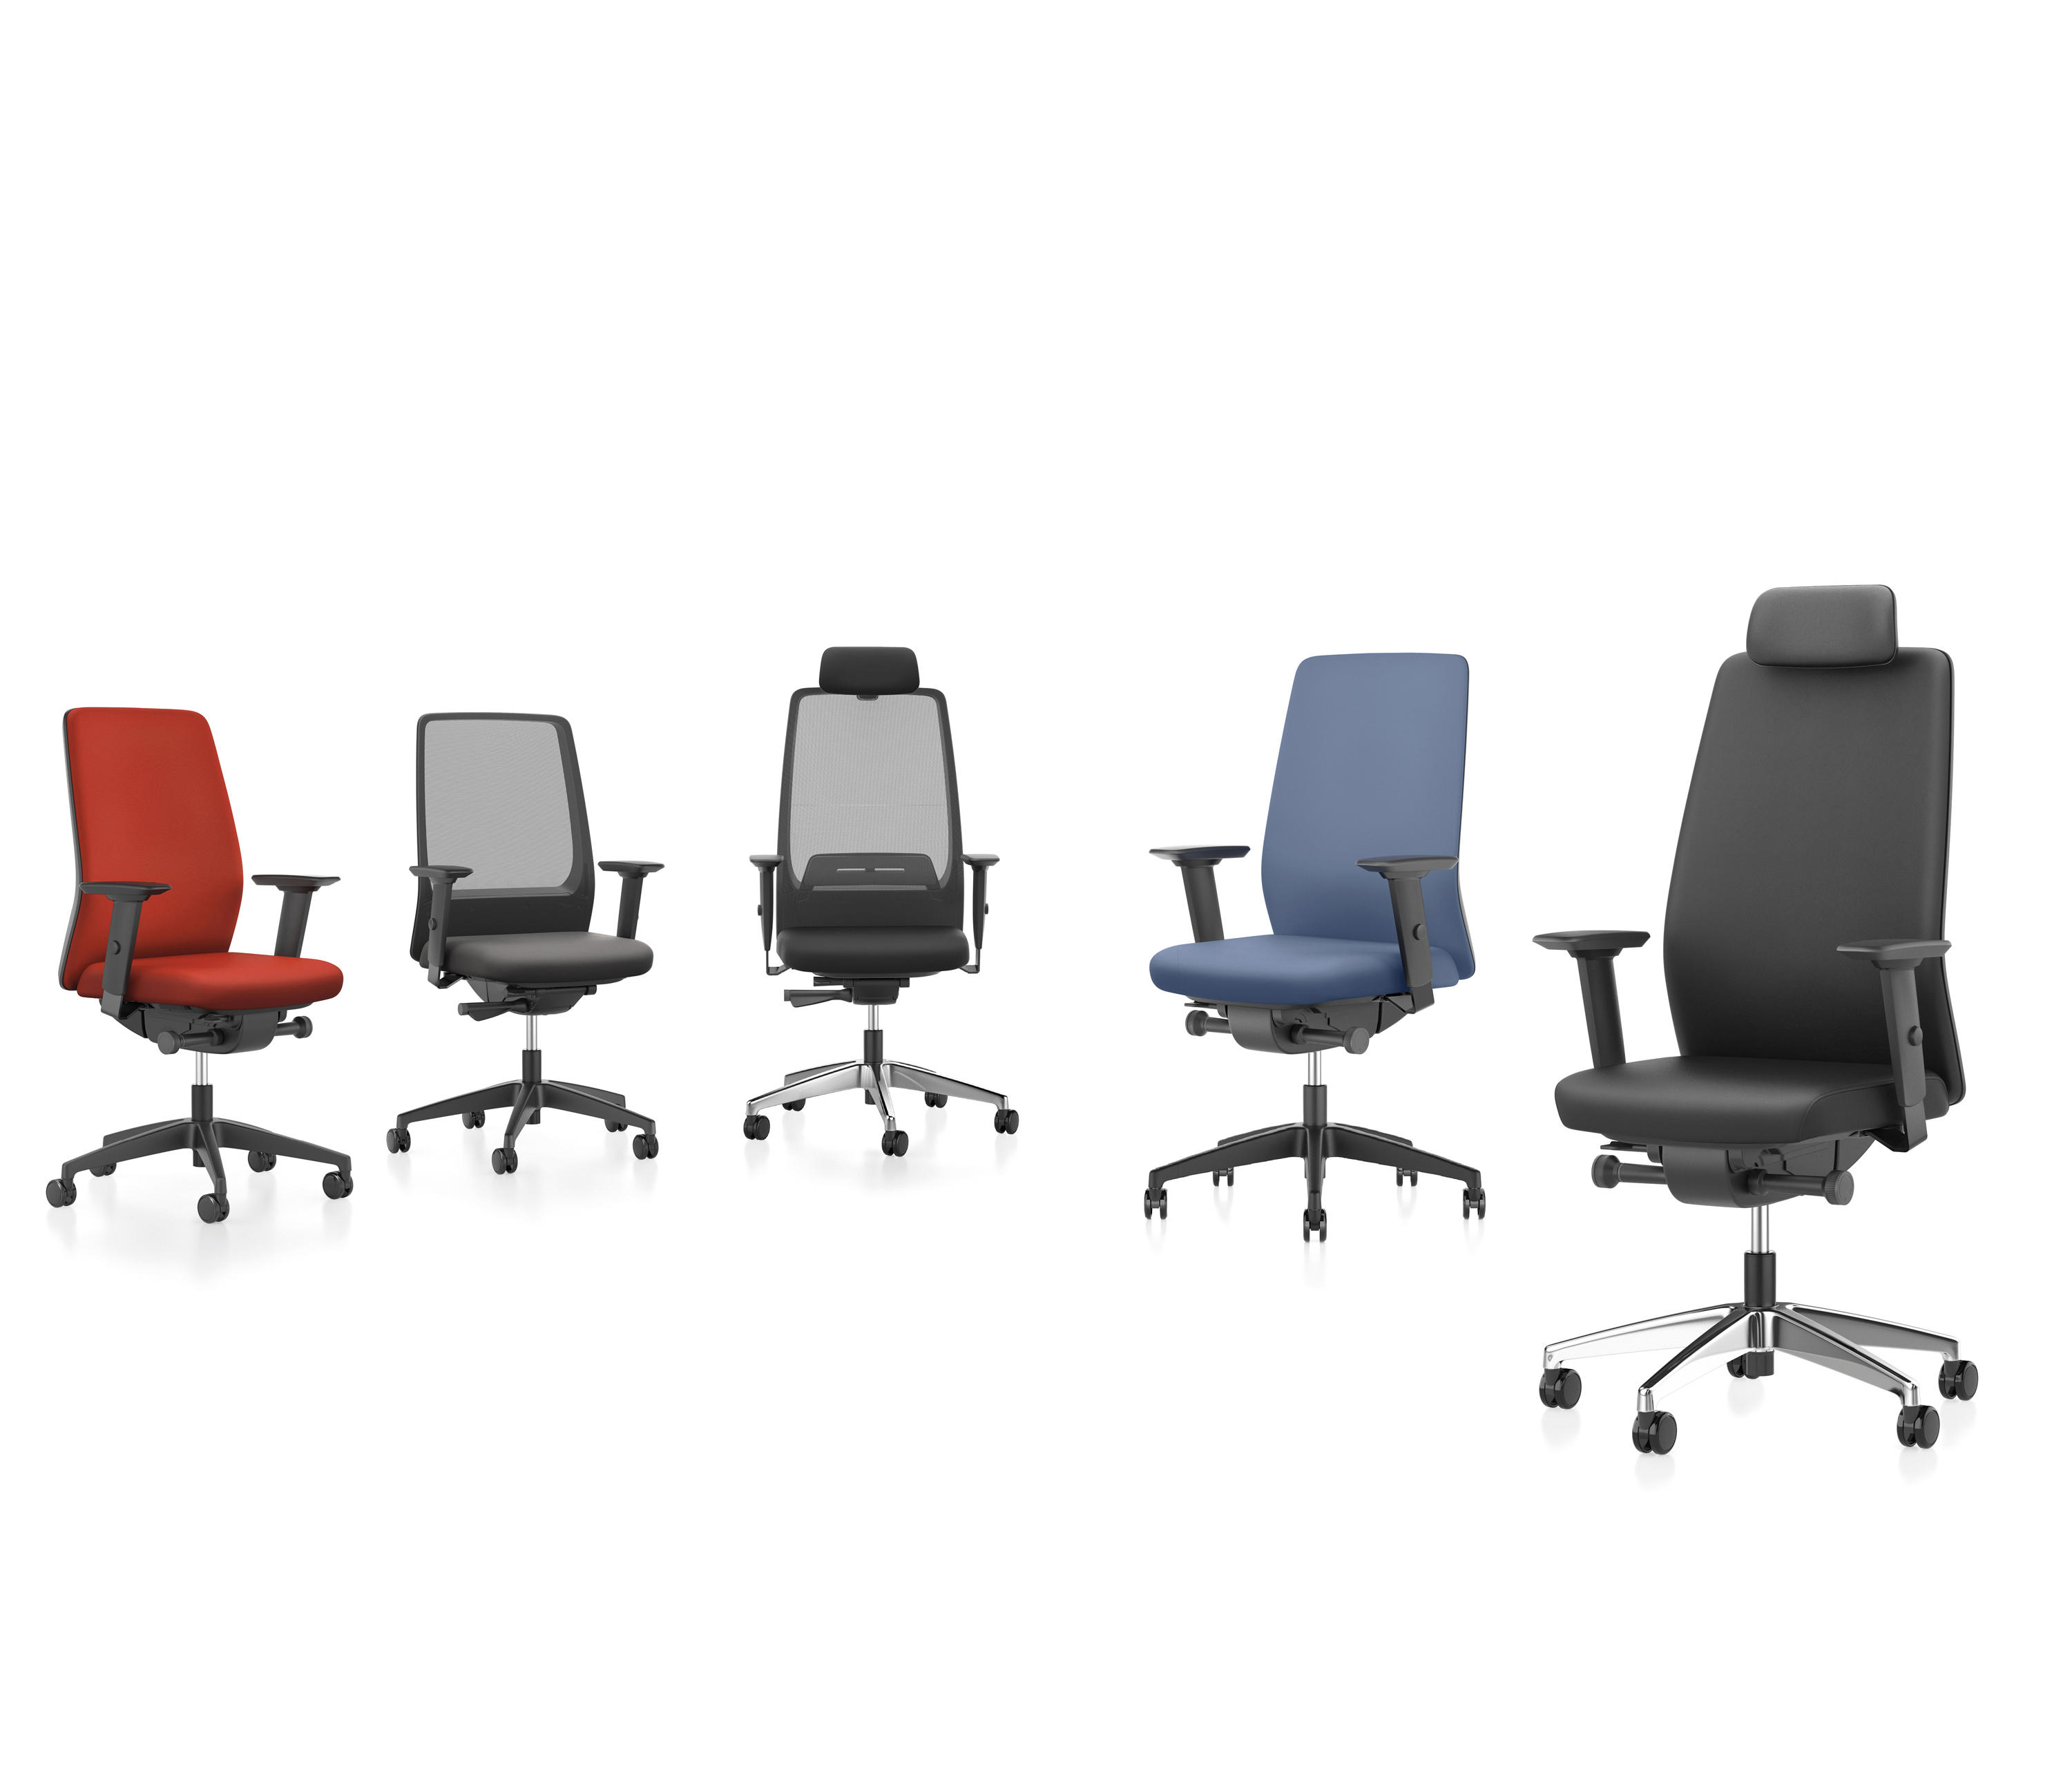 AIMIS1 1S02 - Task chairs from Interstuhl Büromöbel GmbH & Co. KG ...